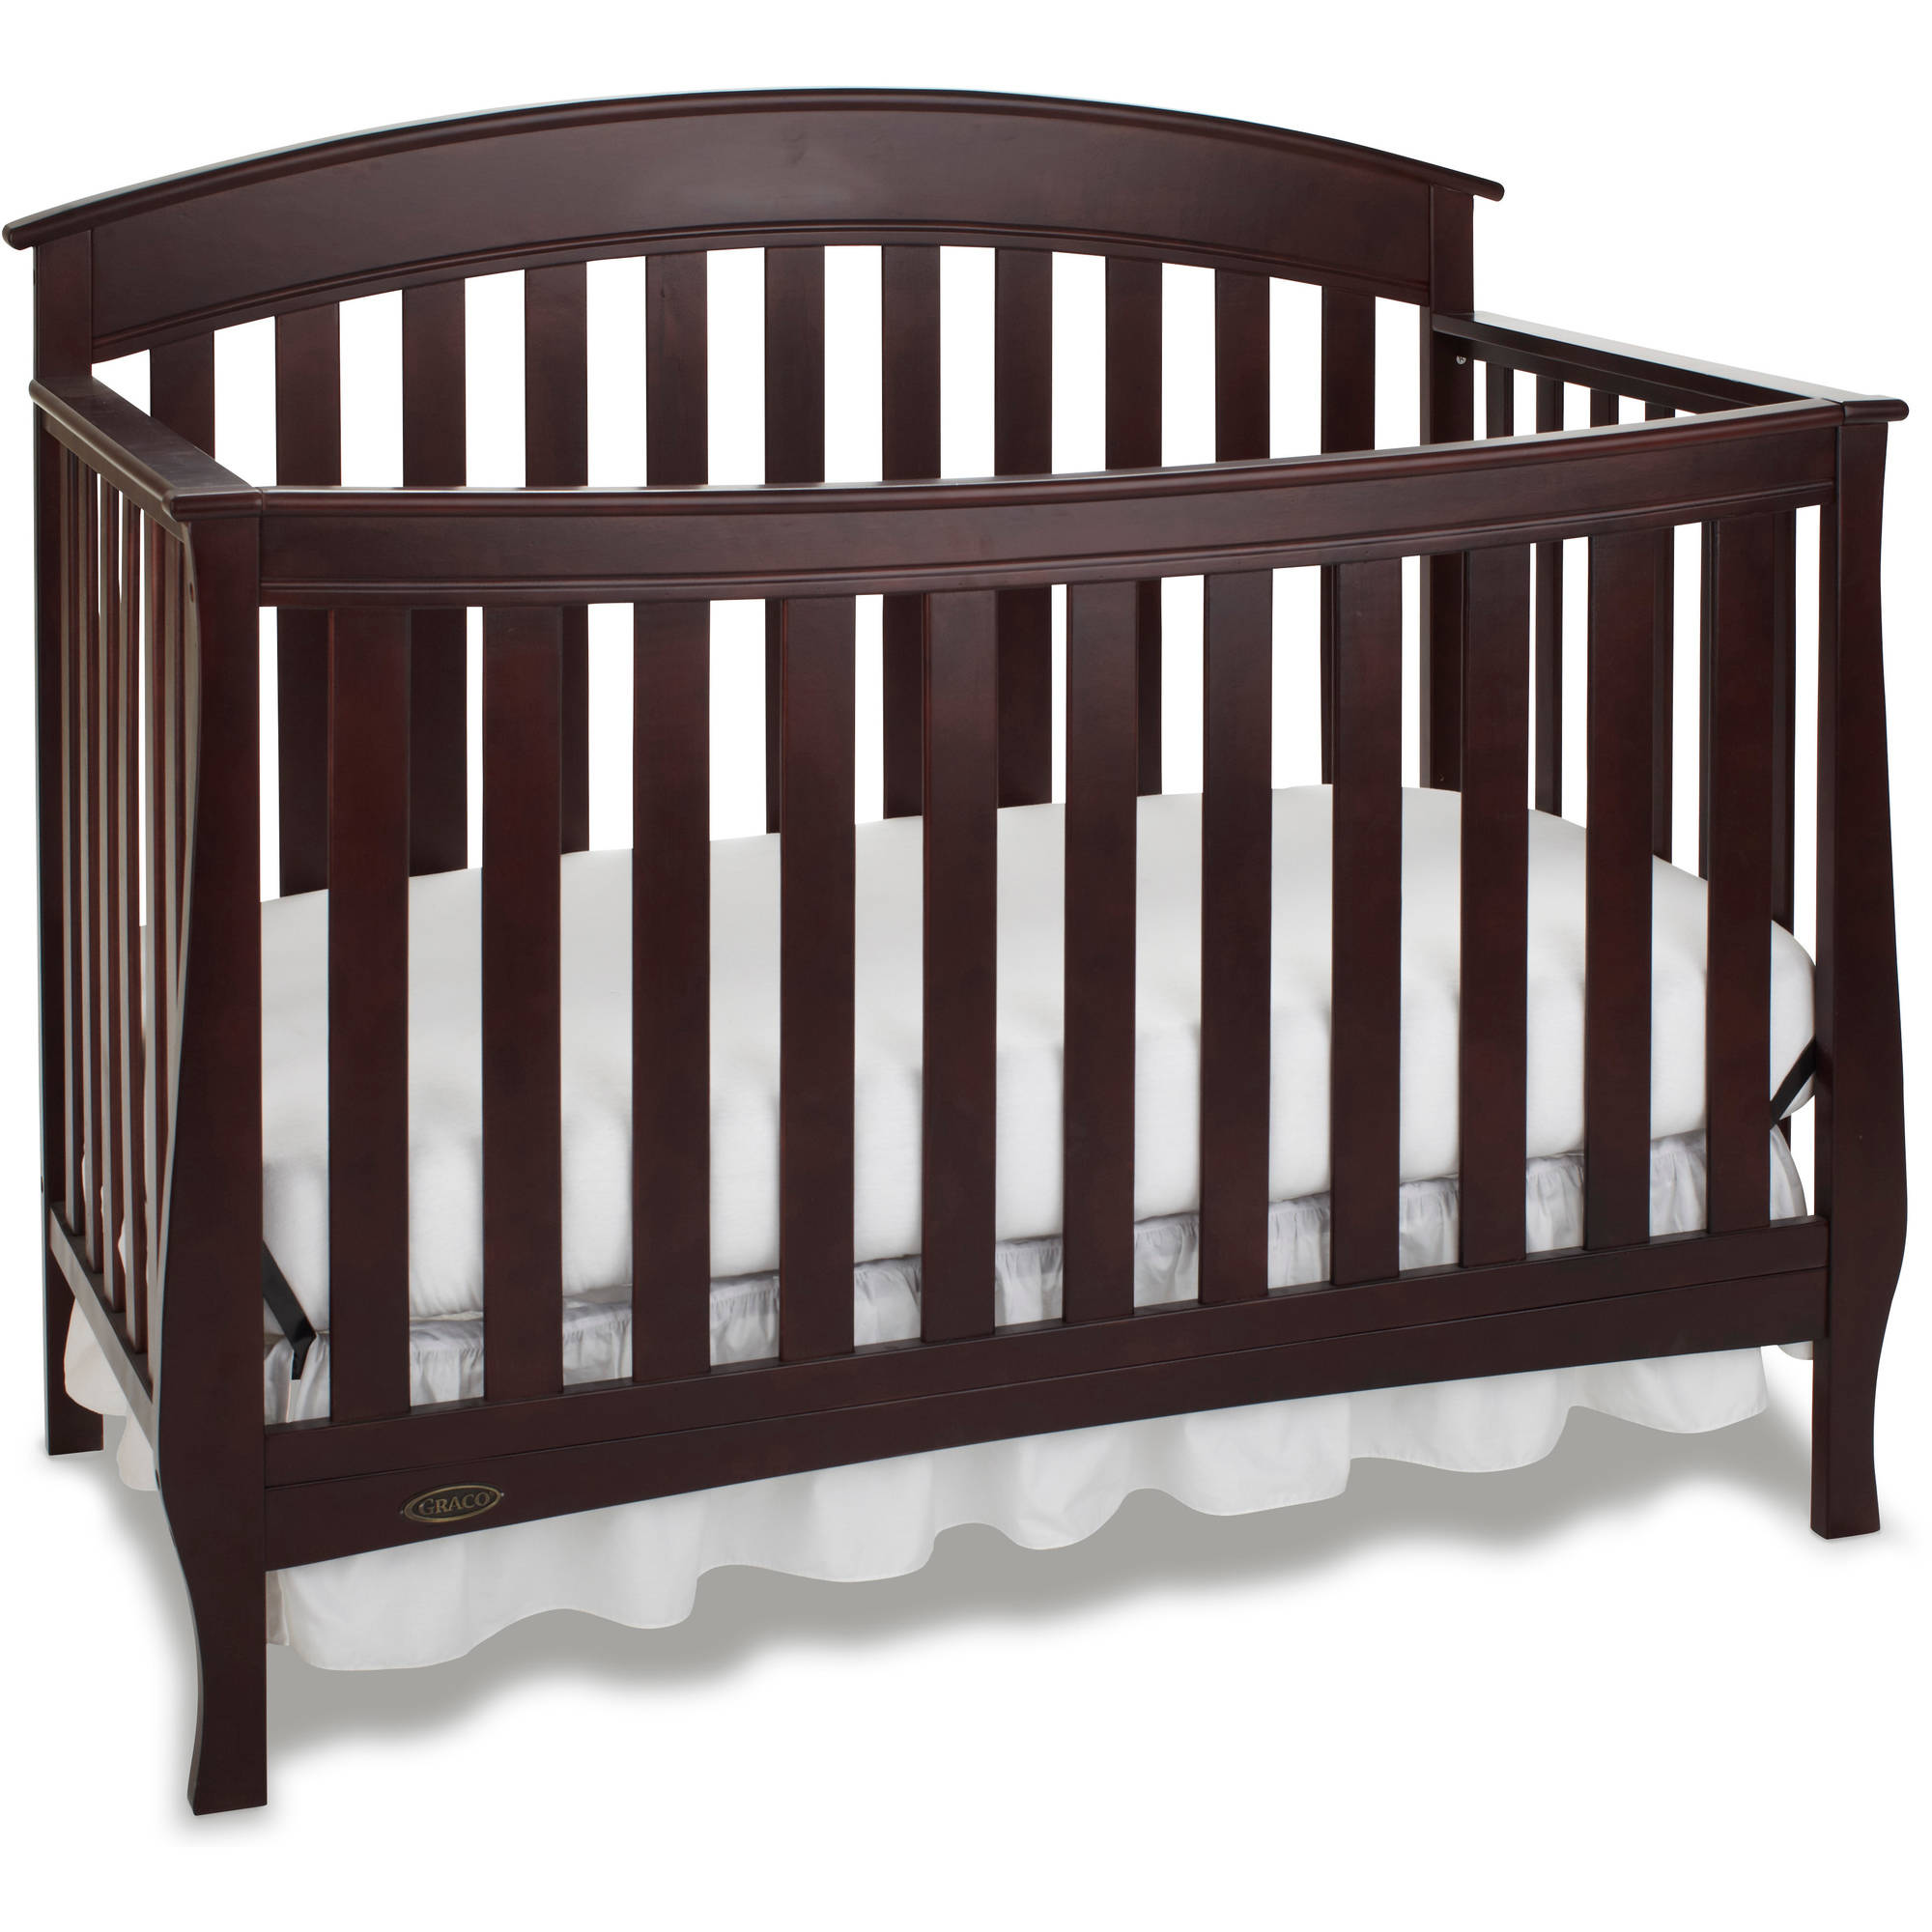 Graco Suri 4 in 1 Convertible Crib Espresso